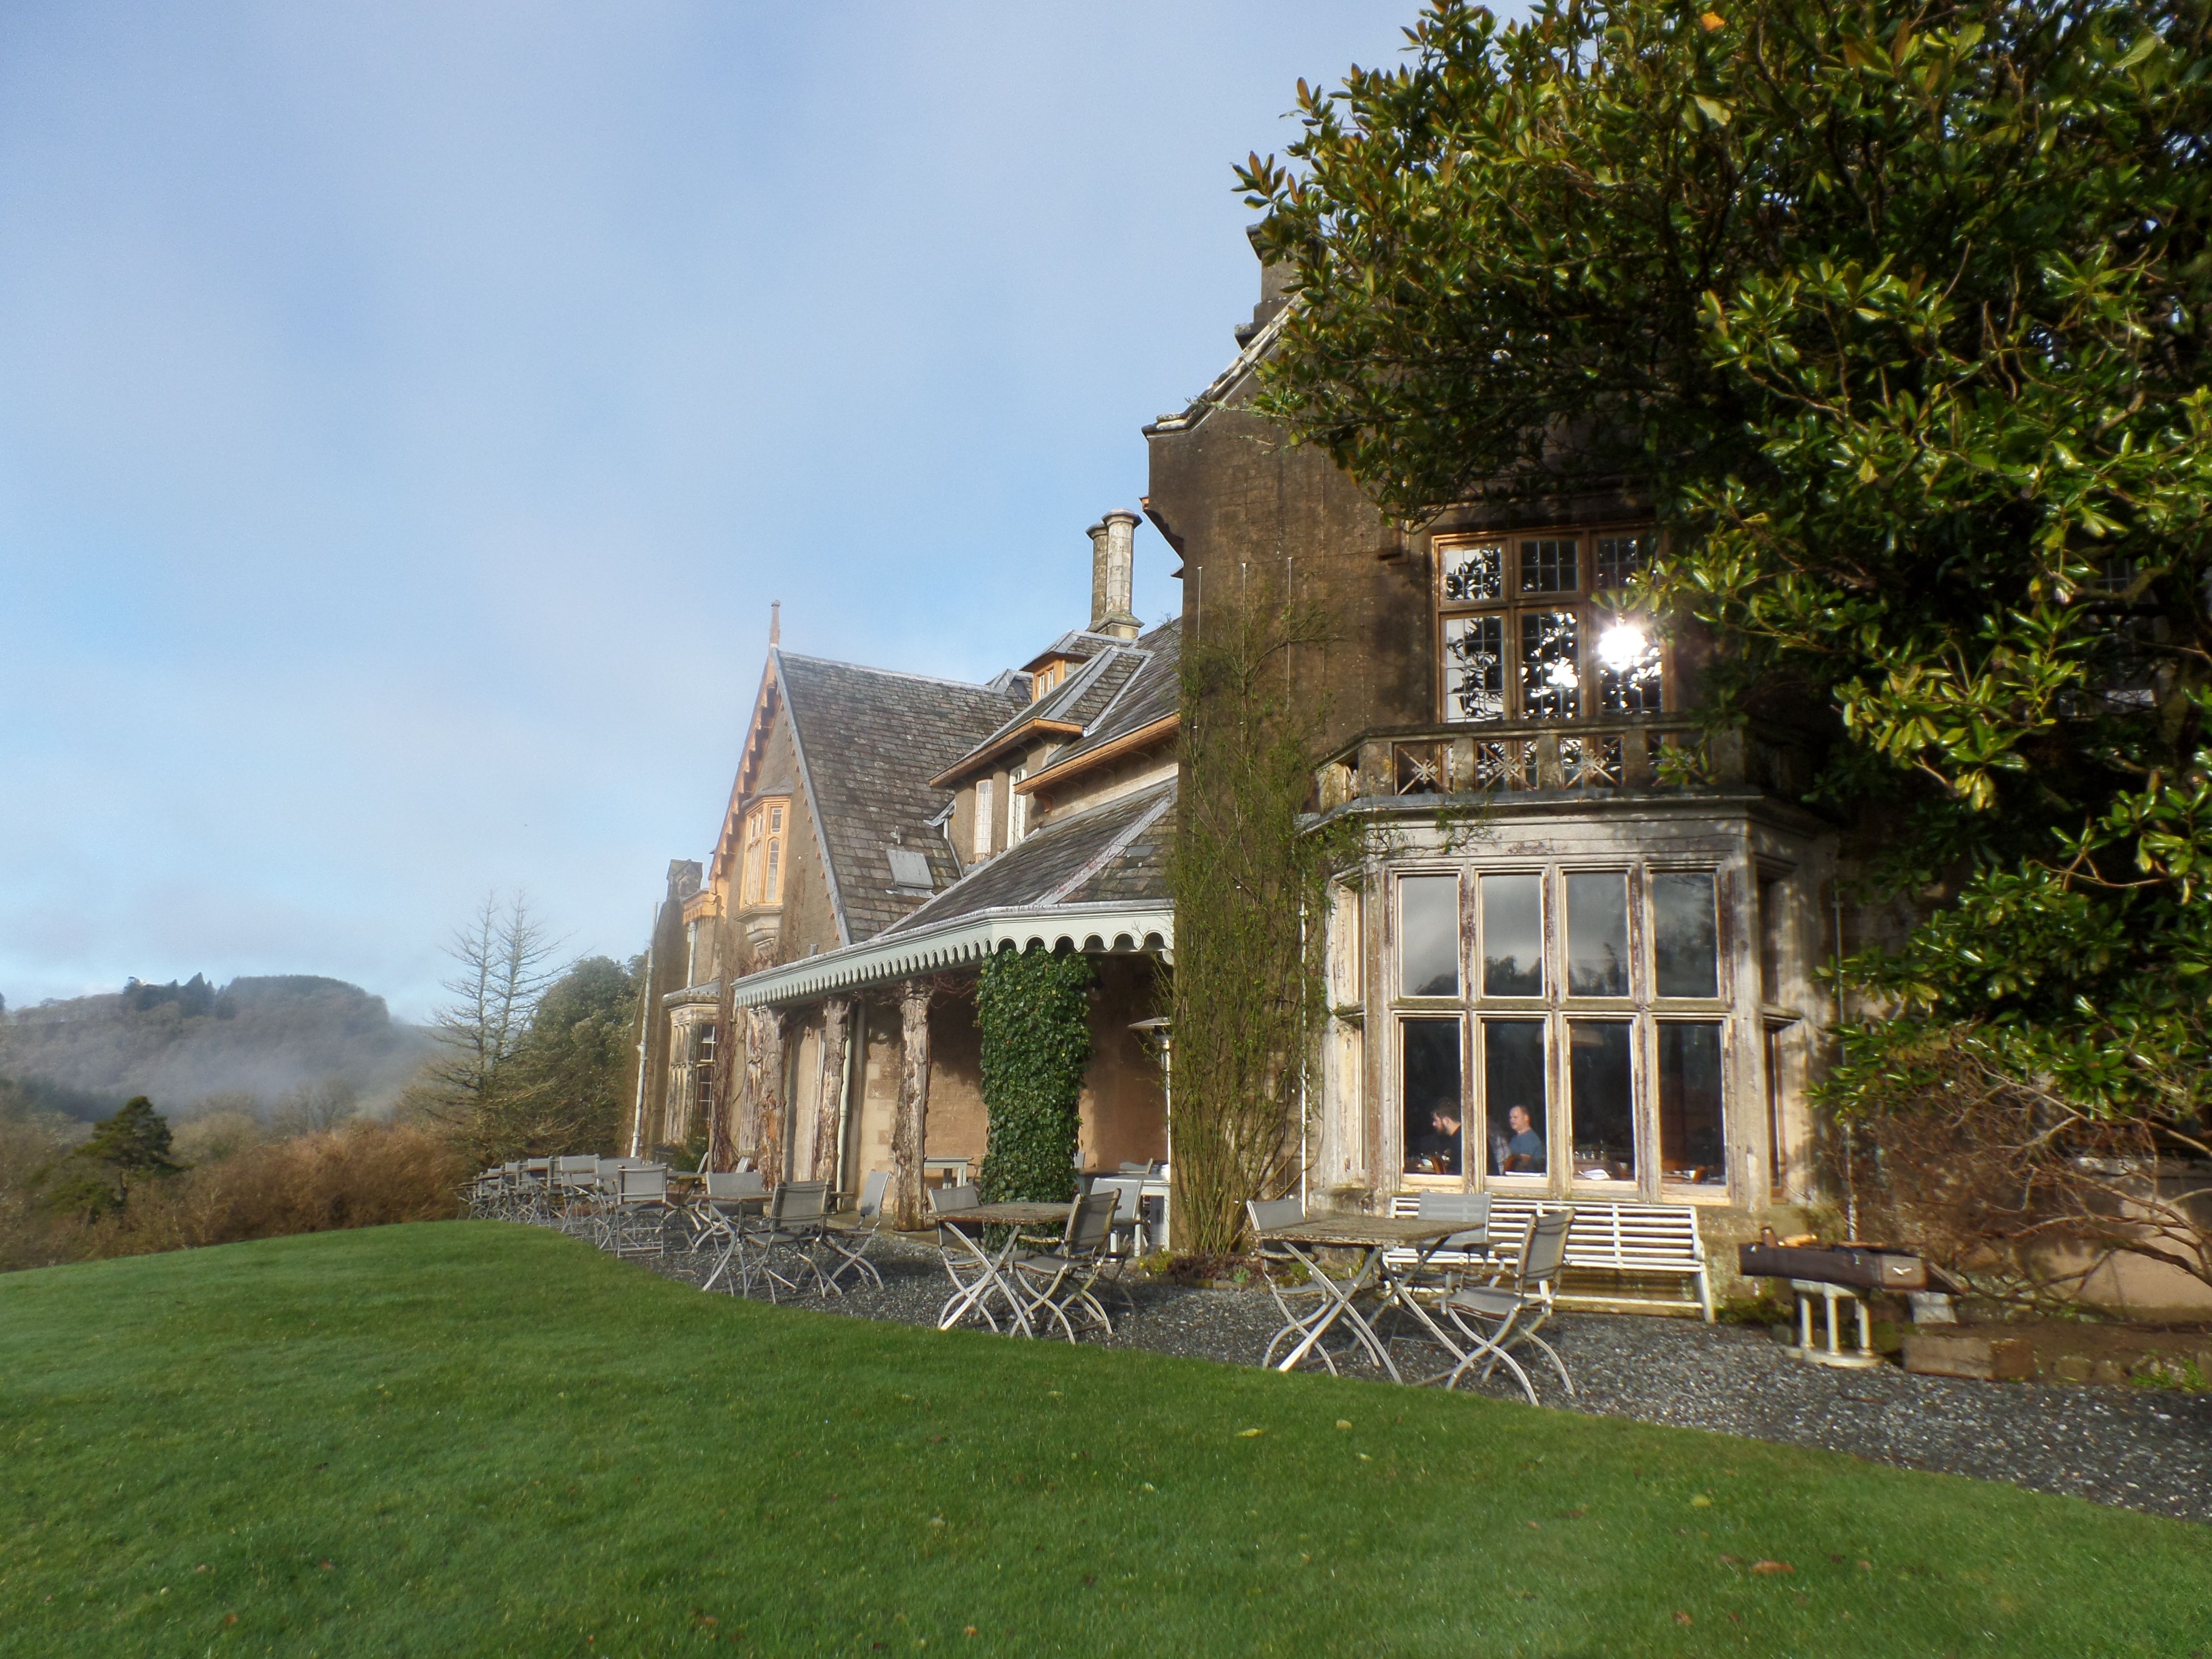 Lost in the countryside, away from it all, you feel like if you had gone through an enchanted door and entered another world. The wonderful garden setting, the beautiful manor house, the kind and efficient staff make you feel like you are sharing a dear friend's house.